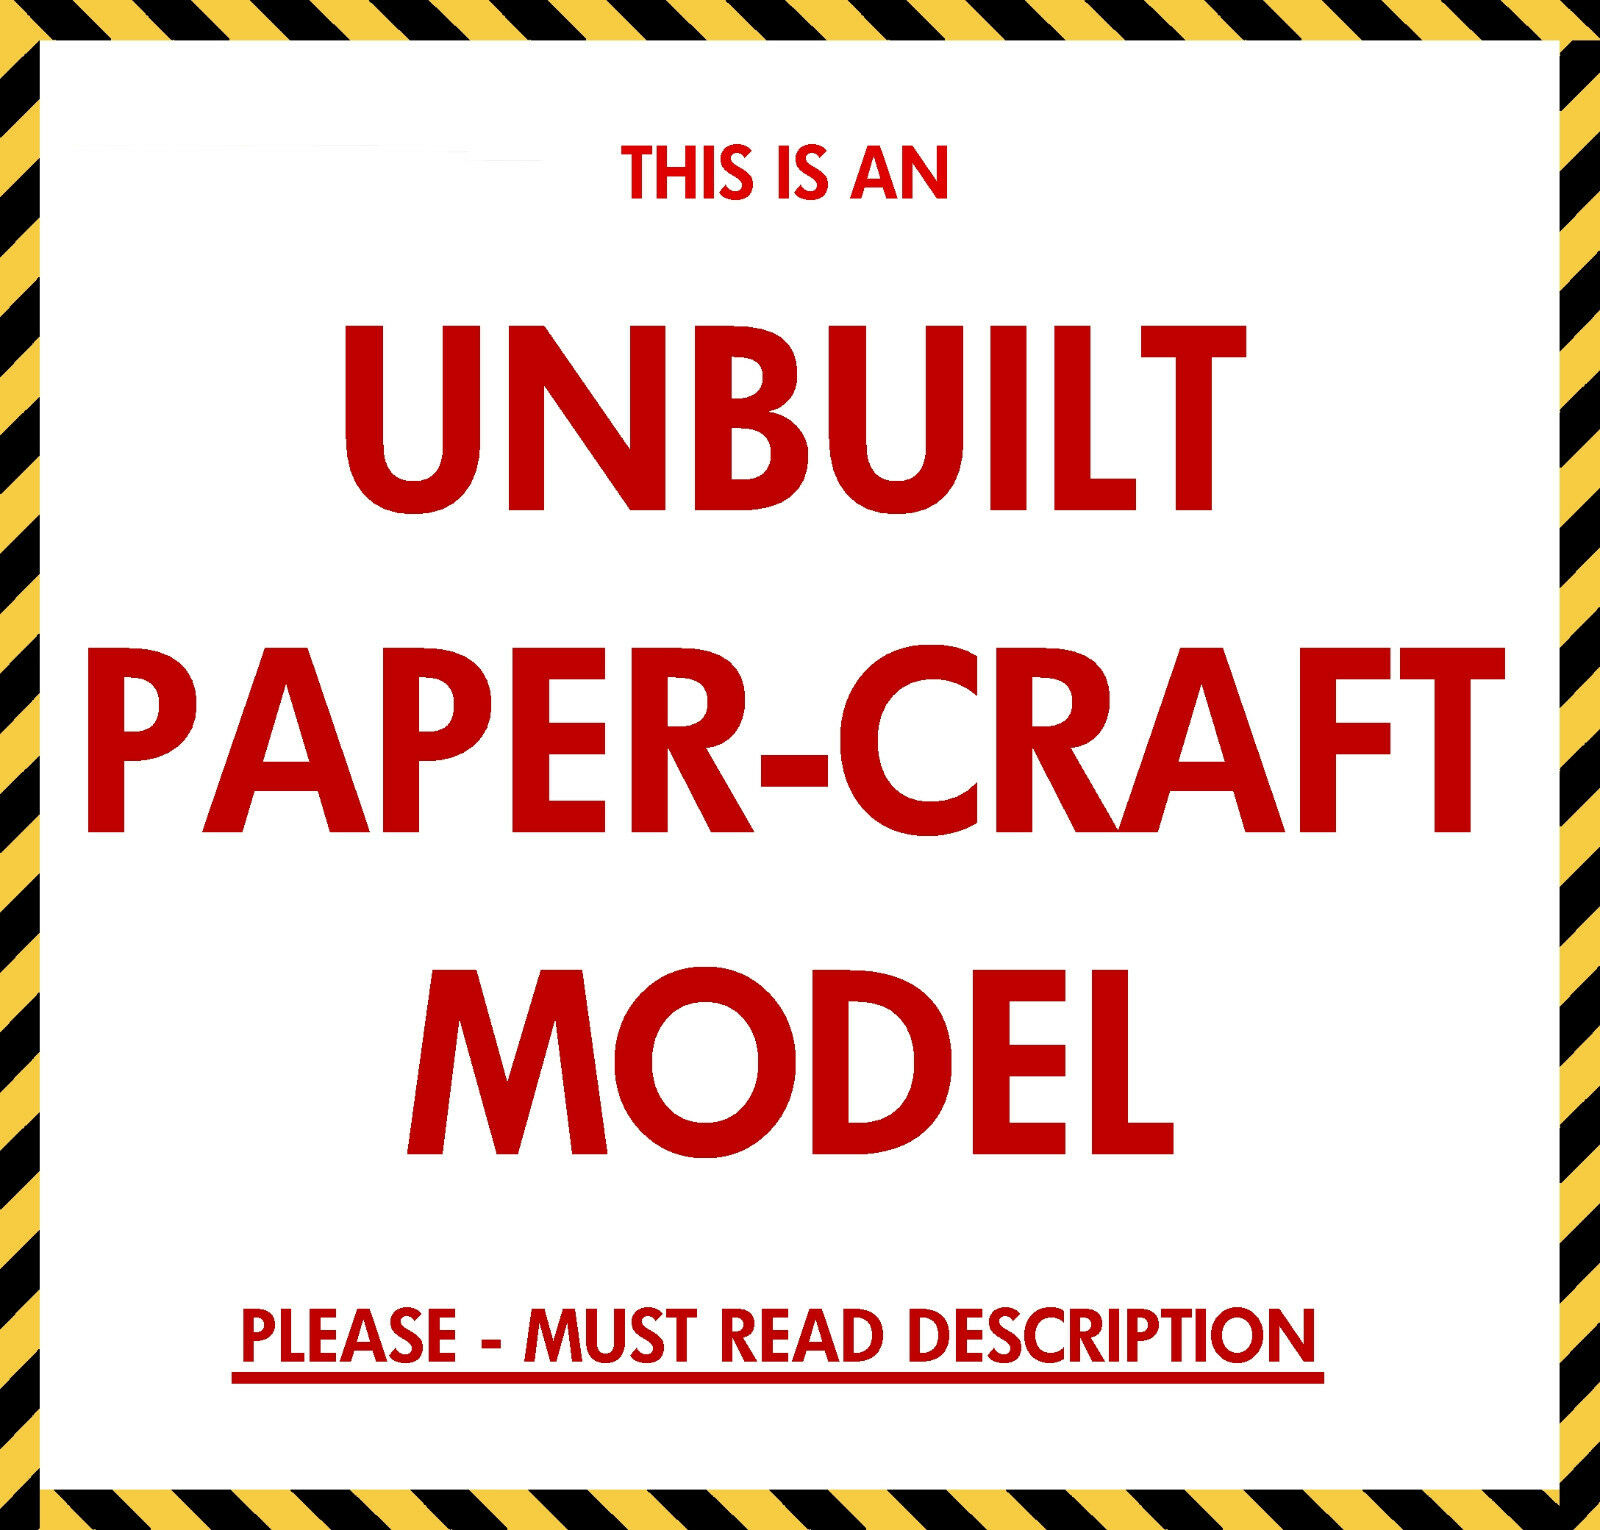 Launch Umbilical Tower (LUT) Craft Model for 1:96 Revell Saturn V - MUST READ